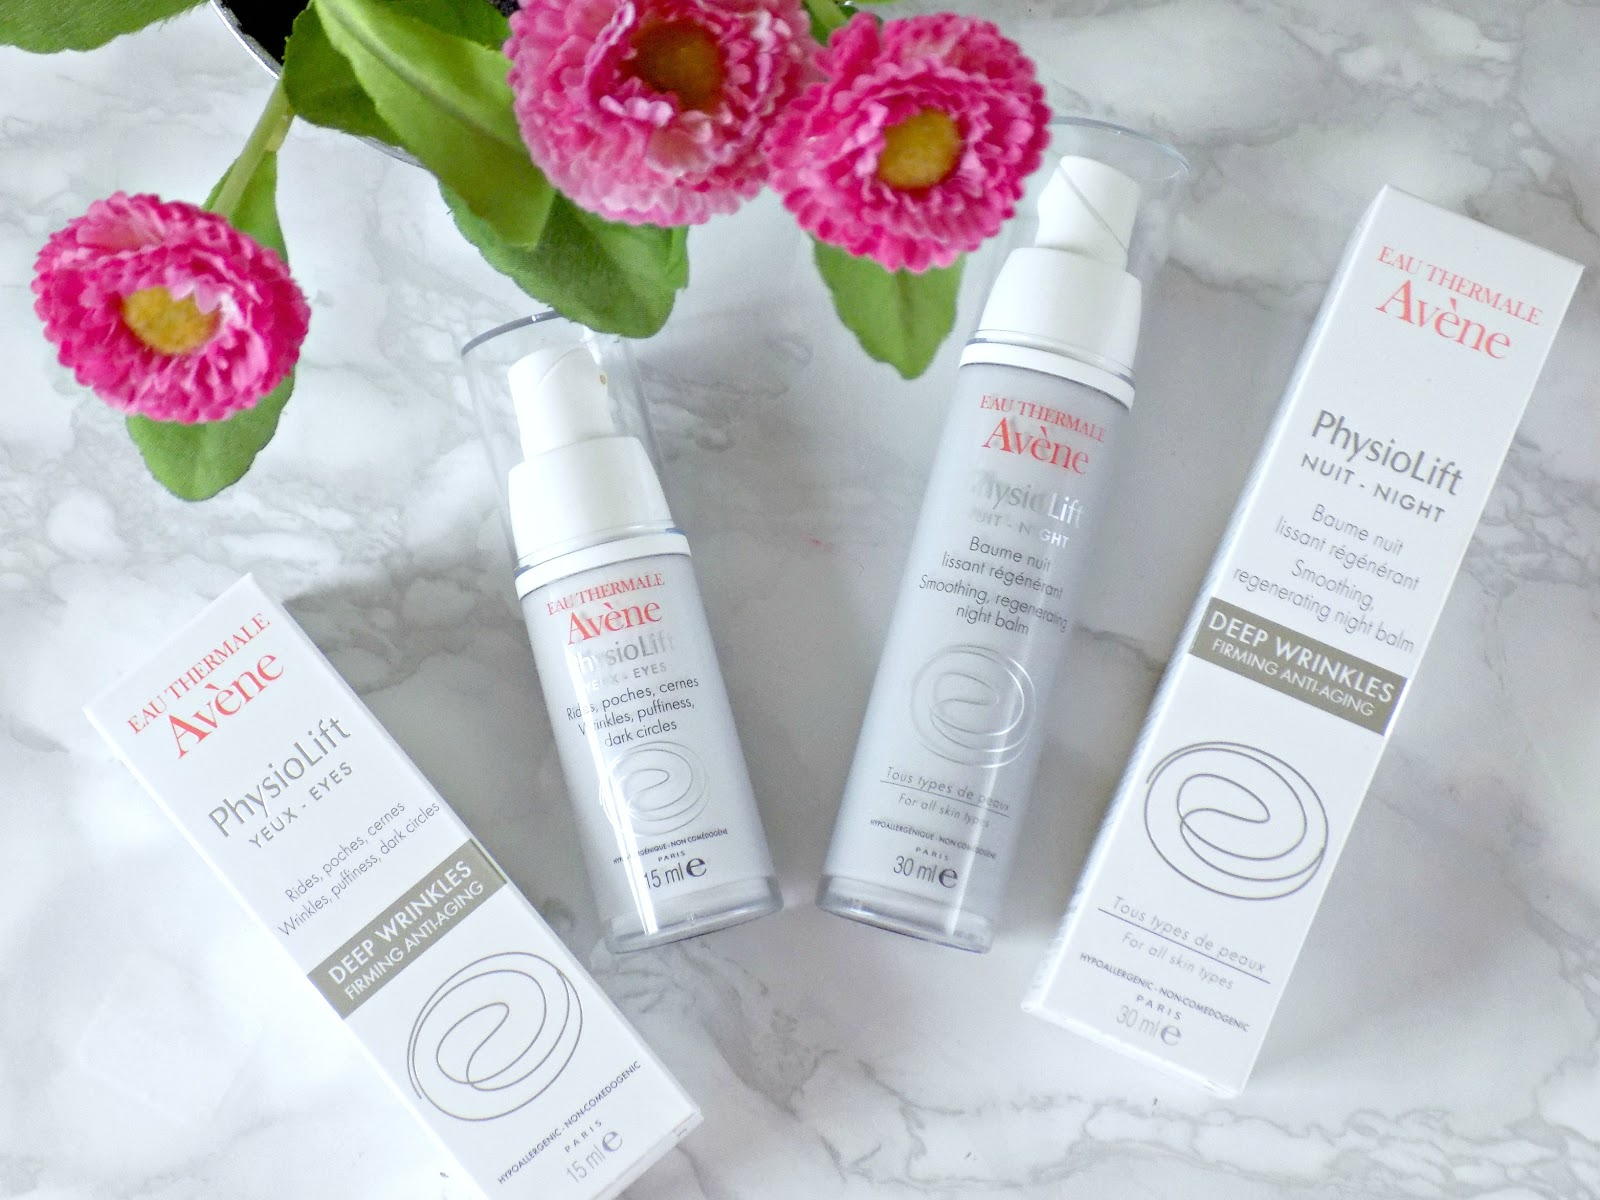 Avene PhysioLift range